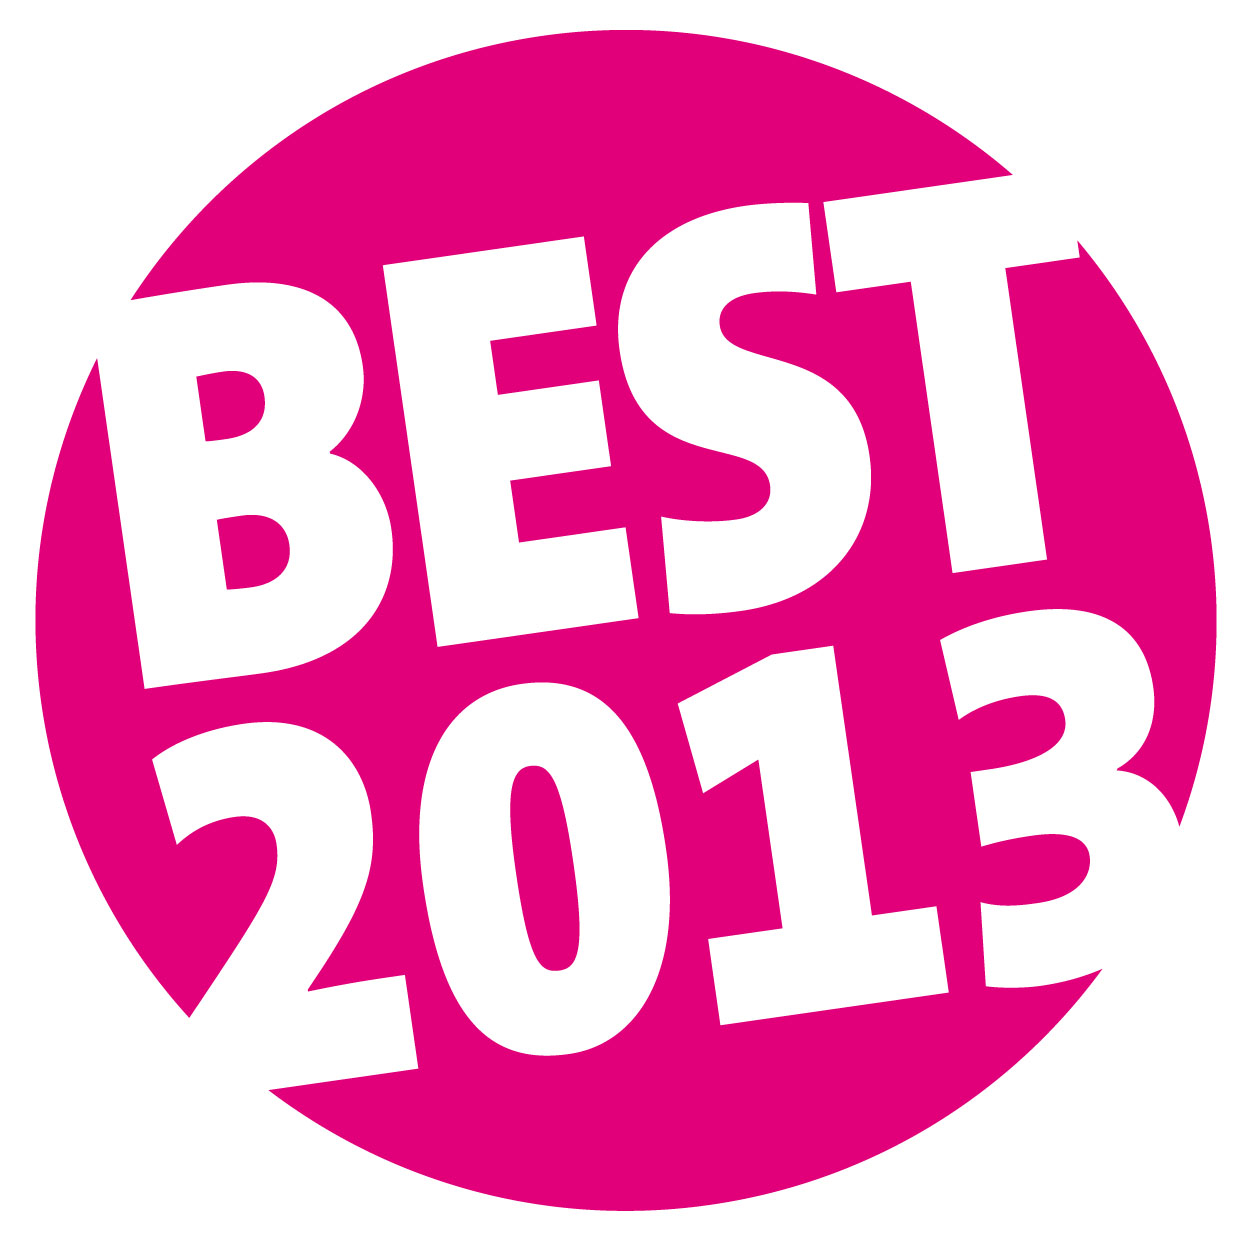 The Best of 2013